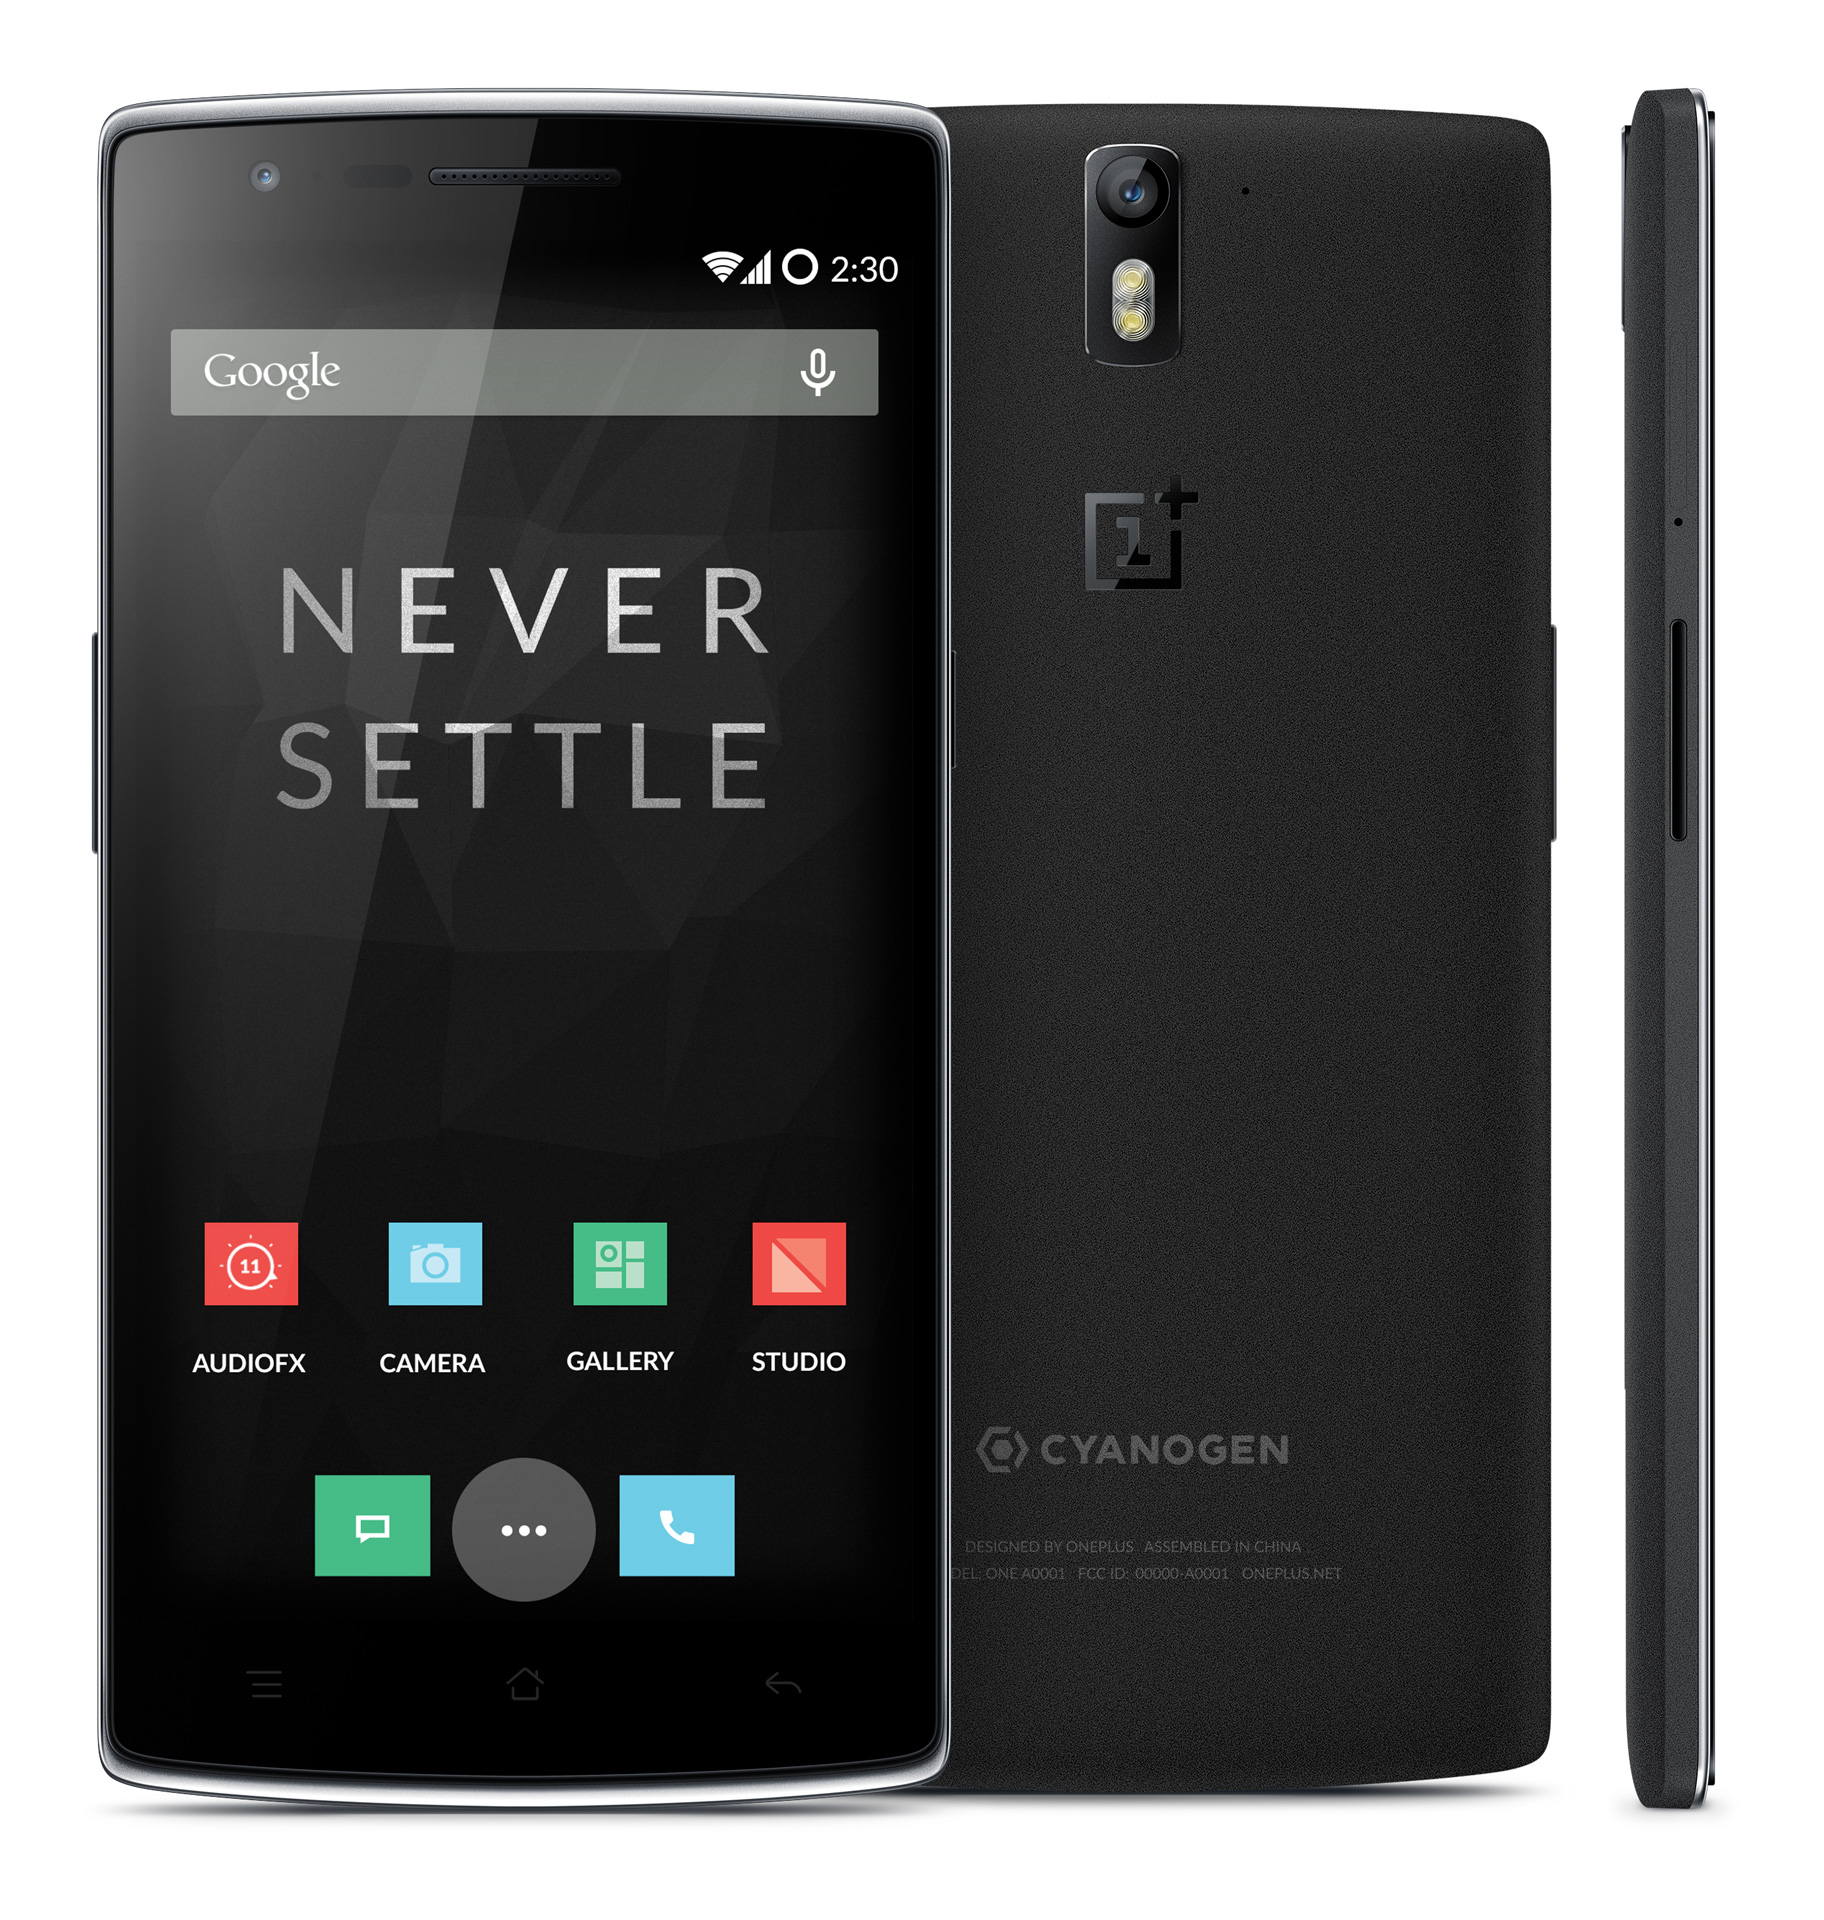 oneplus-one-press-shots-3